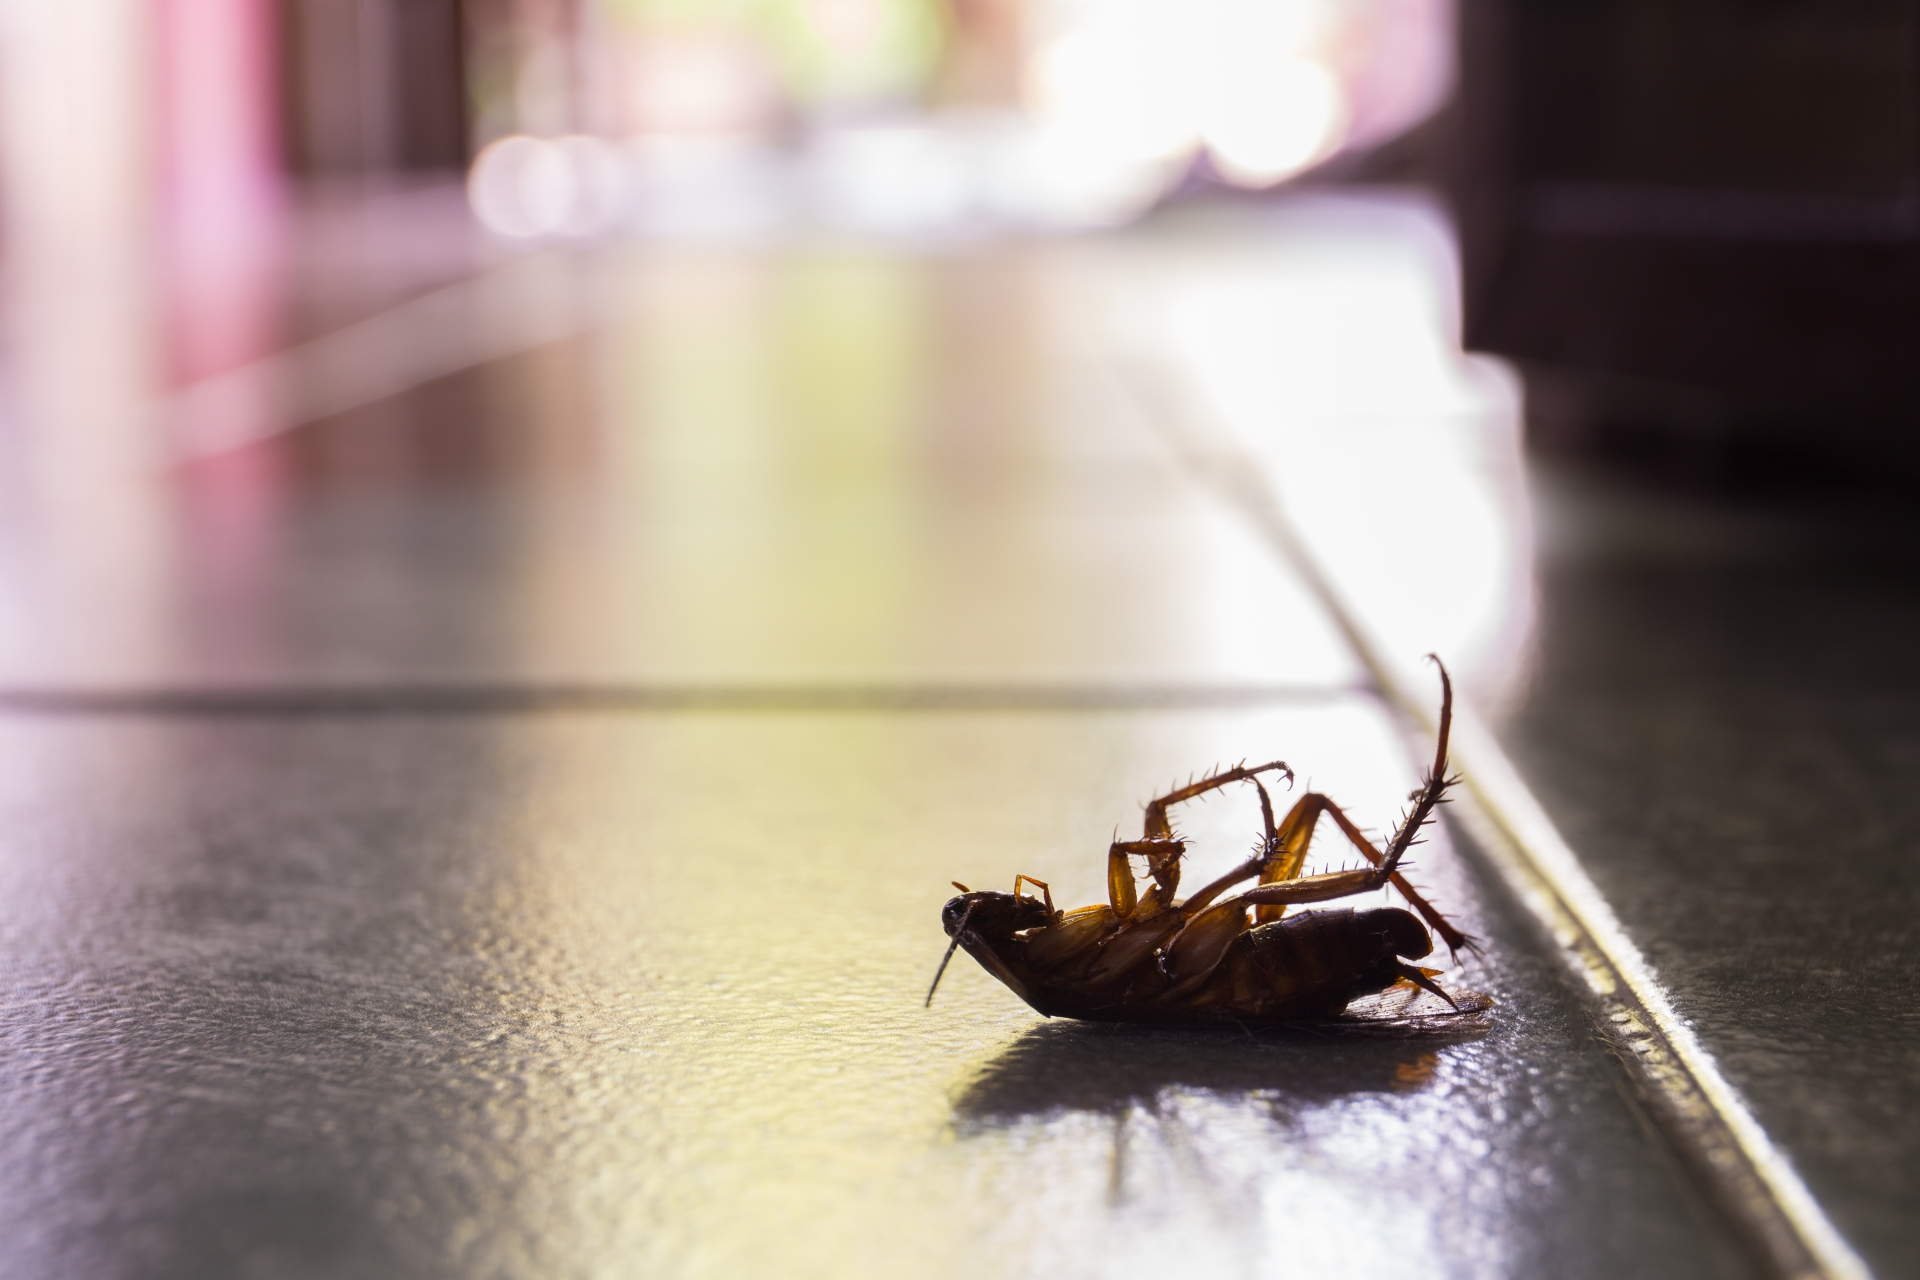 Cockroach Control, Pest Control in West Kensington, W14. Call Now 020 8166 9746